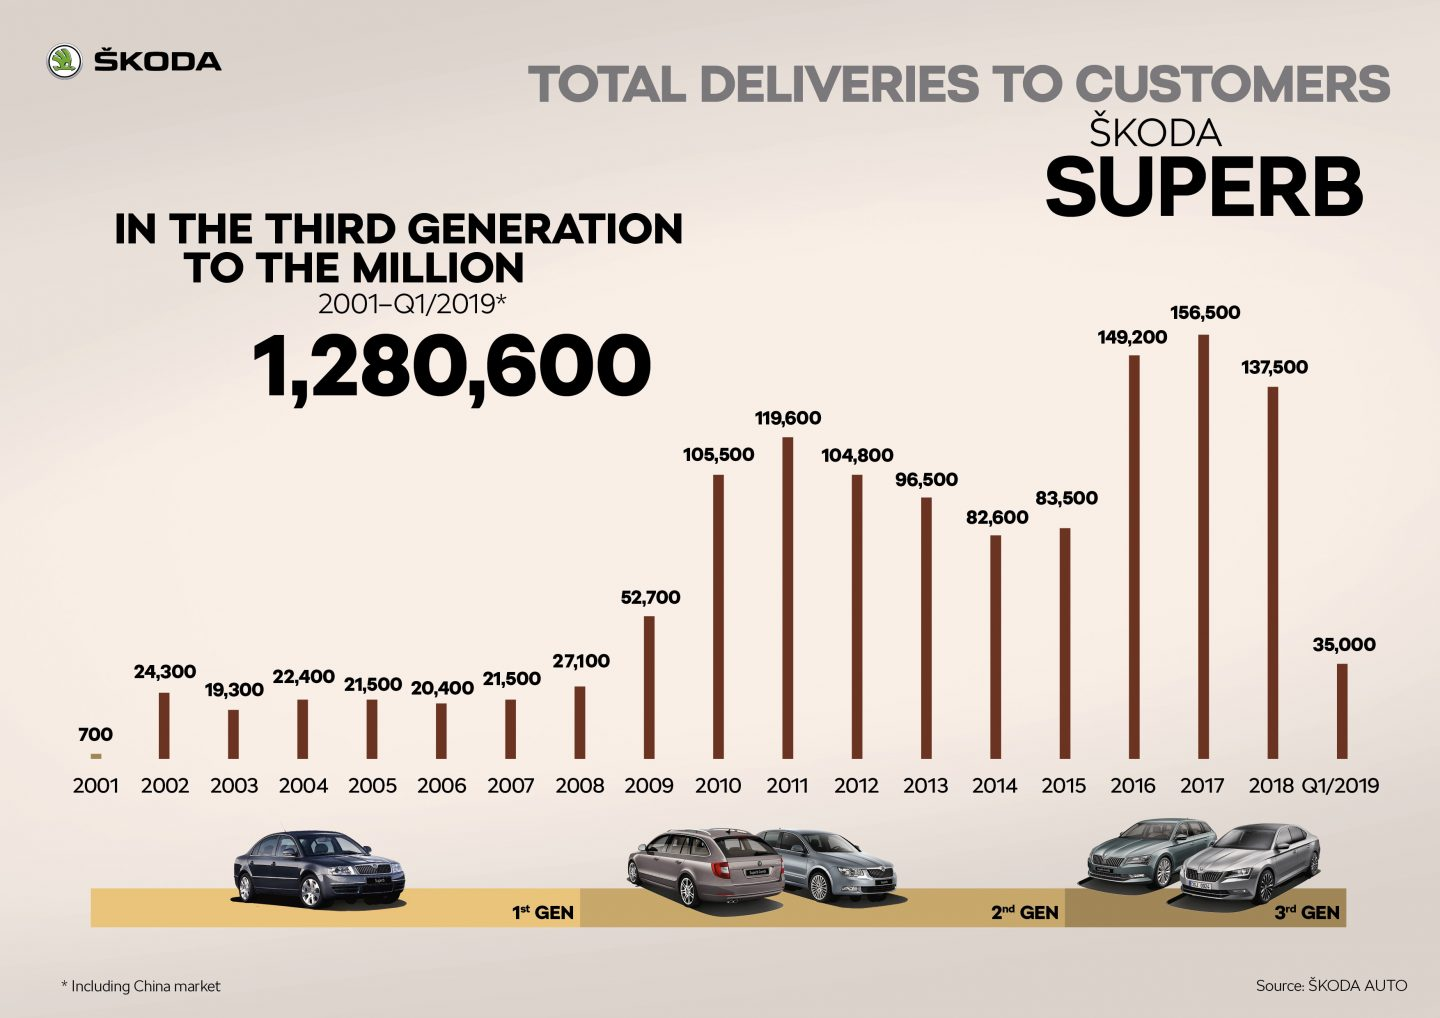 ŠKODA SUPERB Total deliveries to customers